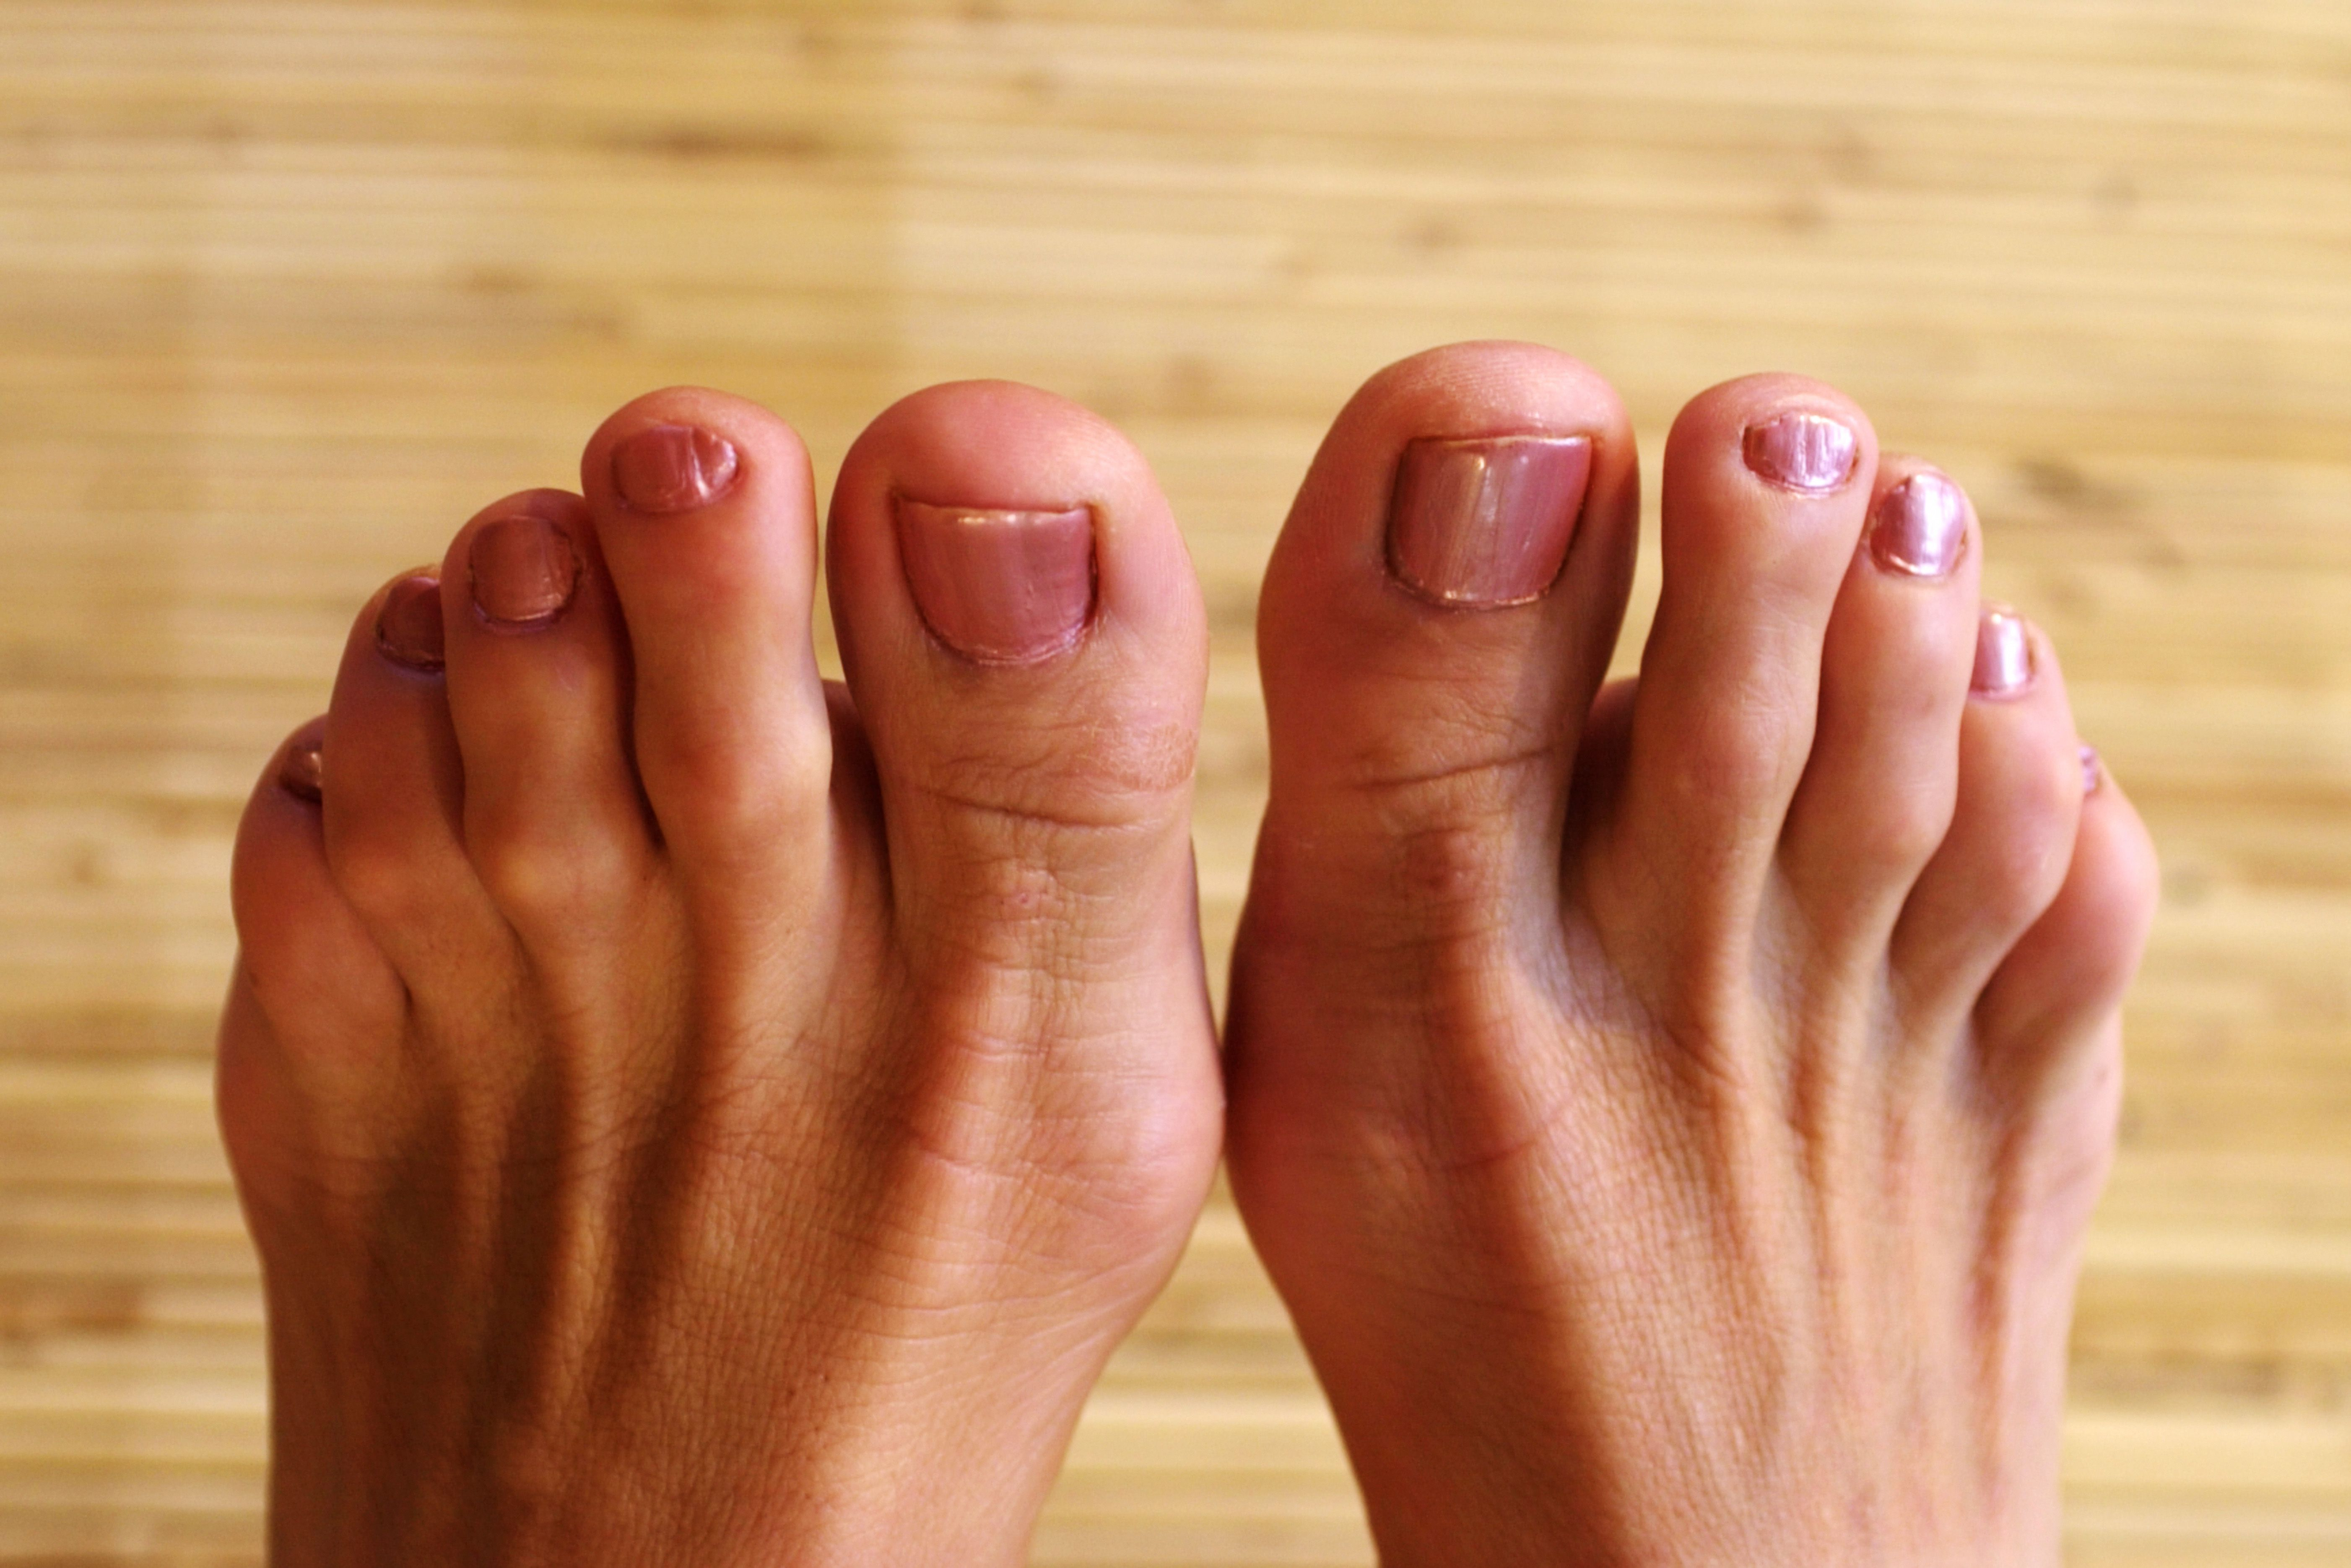 c19d181746 Common Toe Problems That Can Make Feet Look Abnormal